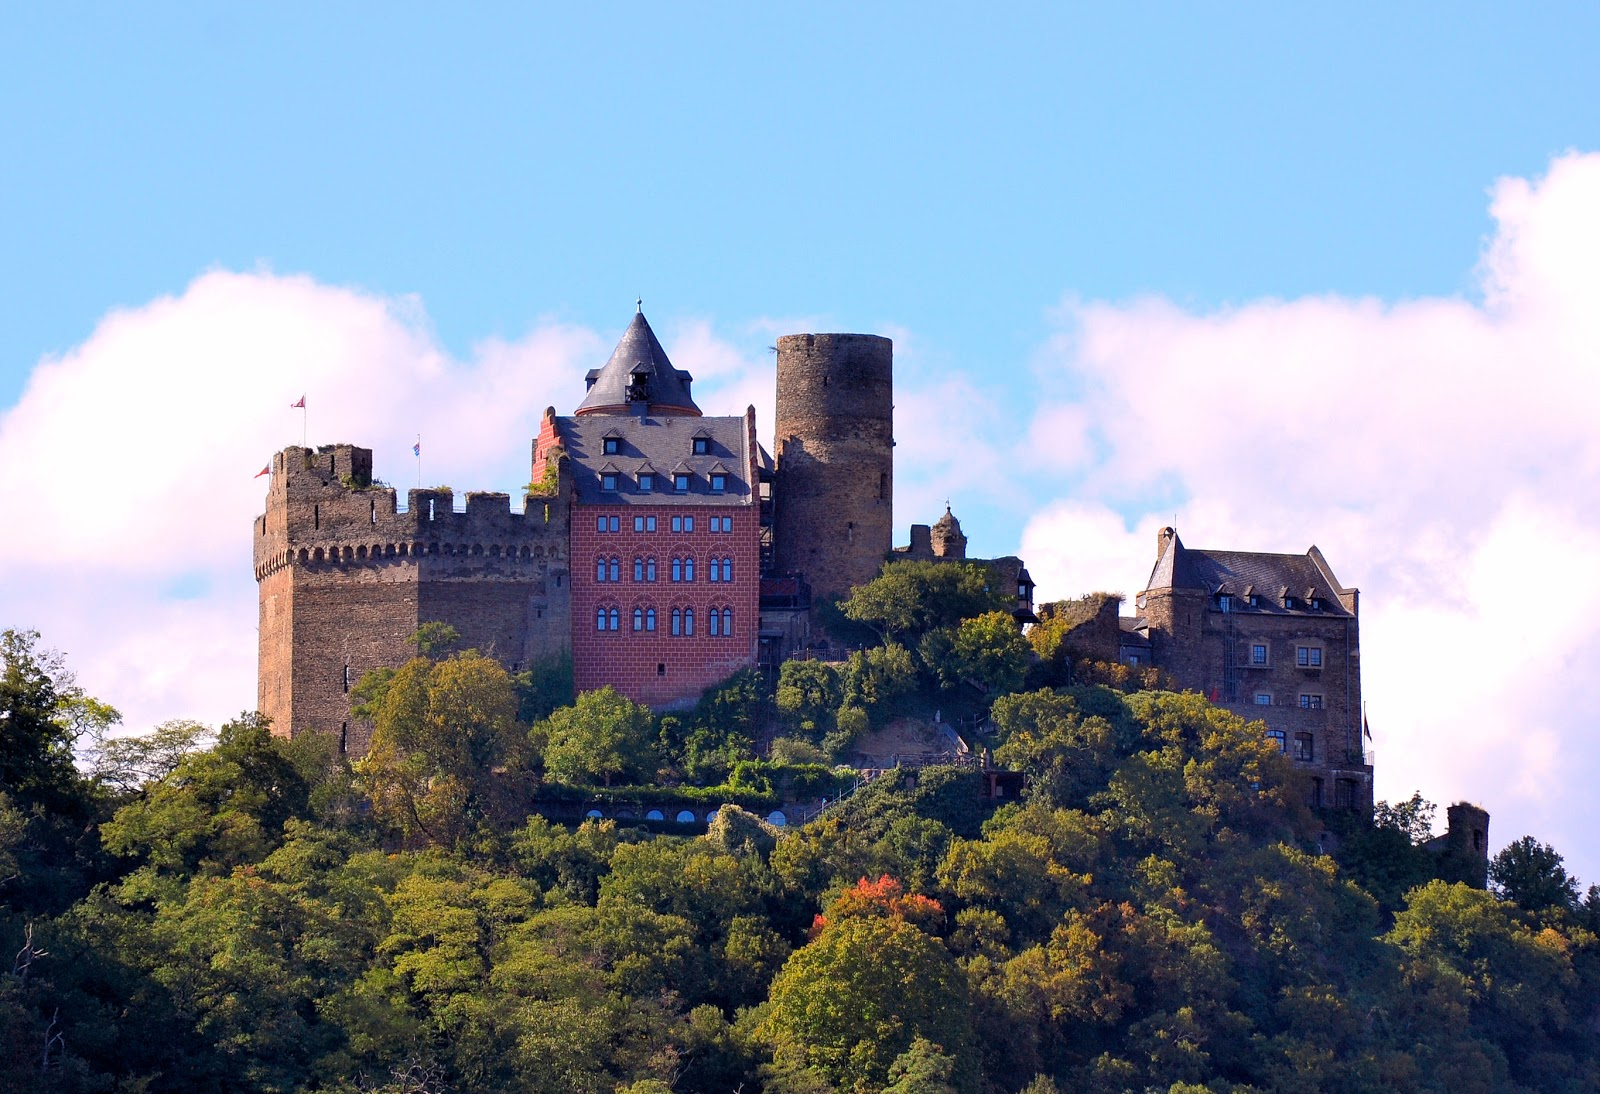 Today, the Schönburg Castle is home to a hotel, restaurant and adjacent Youth Castle Hotel.